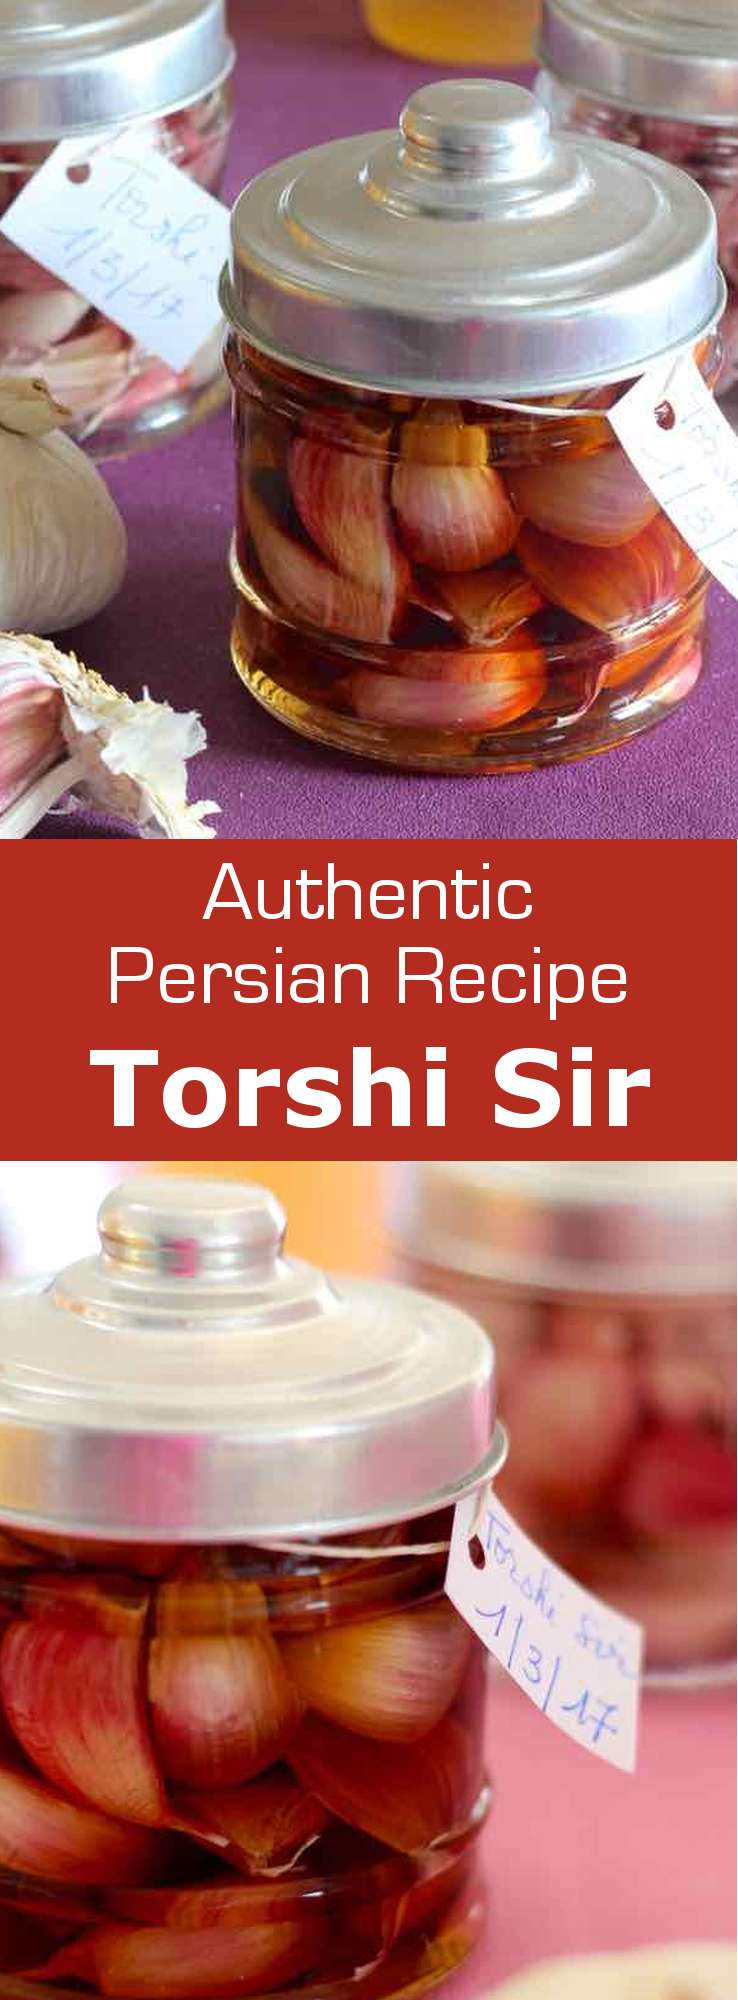 Torshi are pickled vegetables in brine that are popular in the Balkans, the Middle East as well as most Arab countries. Torshi sir is the garlic version. #Persian #PersianCuisine #PersianRecipe #Iranian #IranianCuisine #IranianRecipe #Condiment #WorldCuisine #196flavors